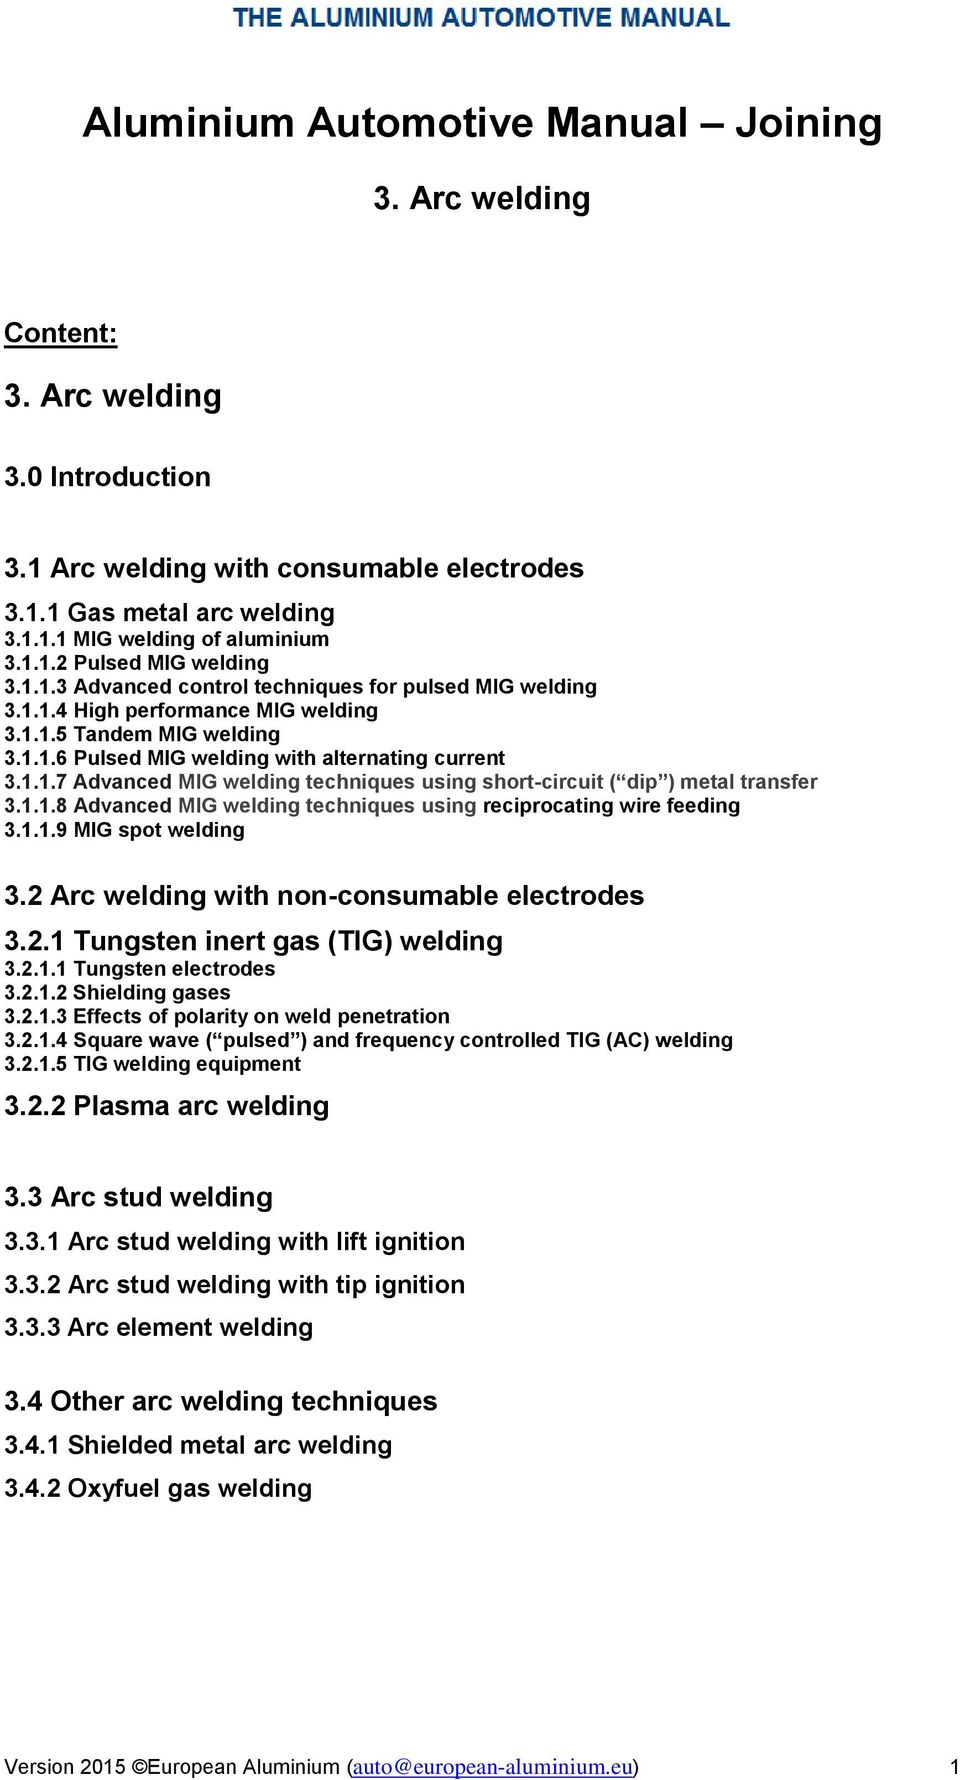 Aluminium Automotive Manual Joining Pdf Mig Welder Parts Related Keywords Suggestions 118 Advanced Welding Techniques Using Reciprocating Wire Feeding 3119 Spot